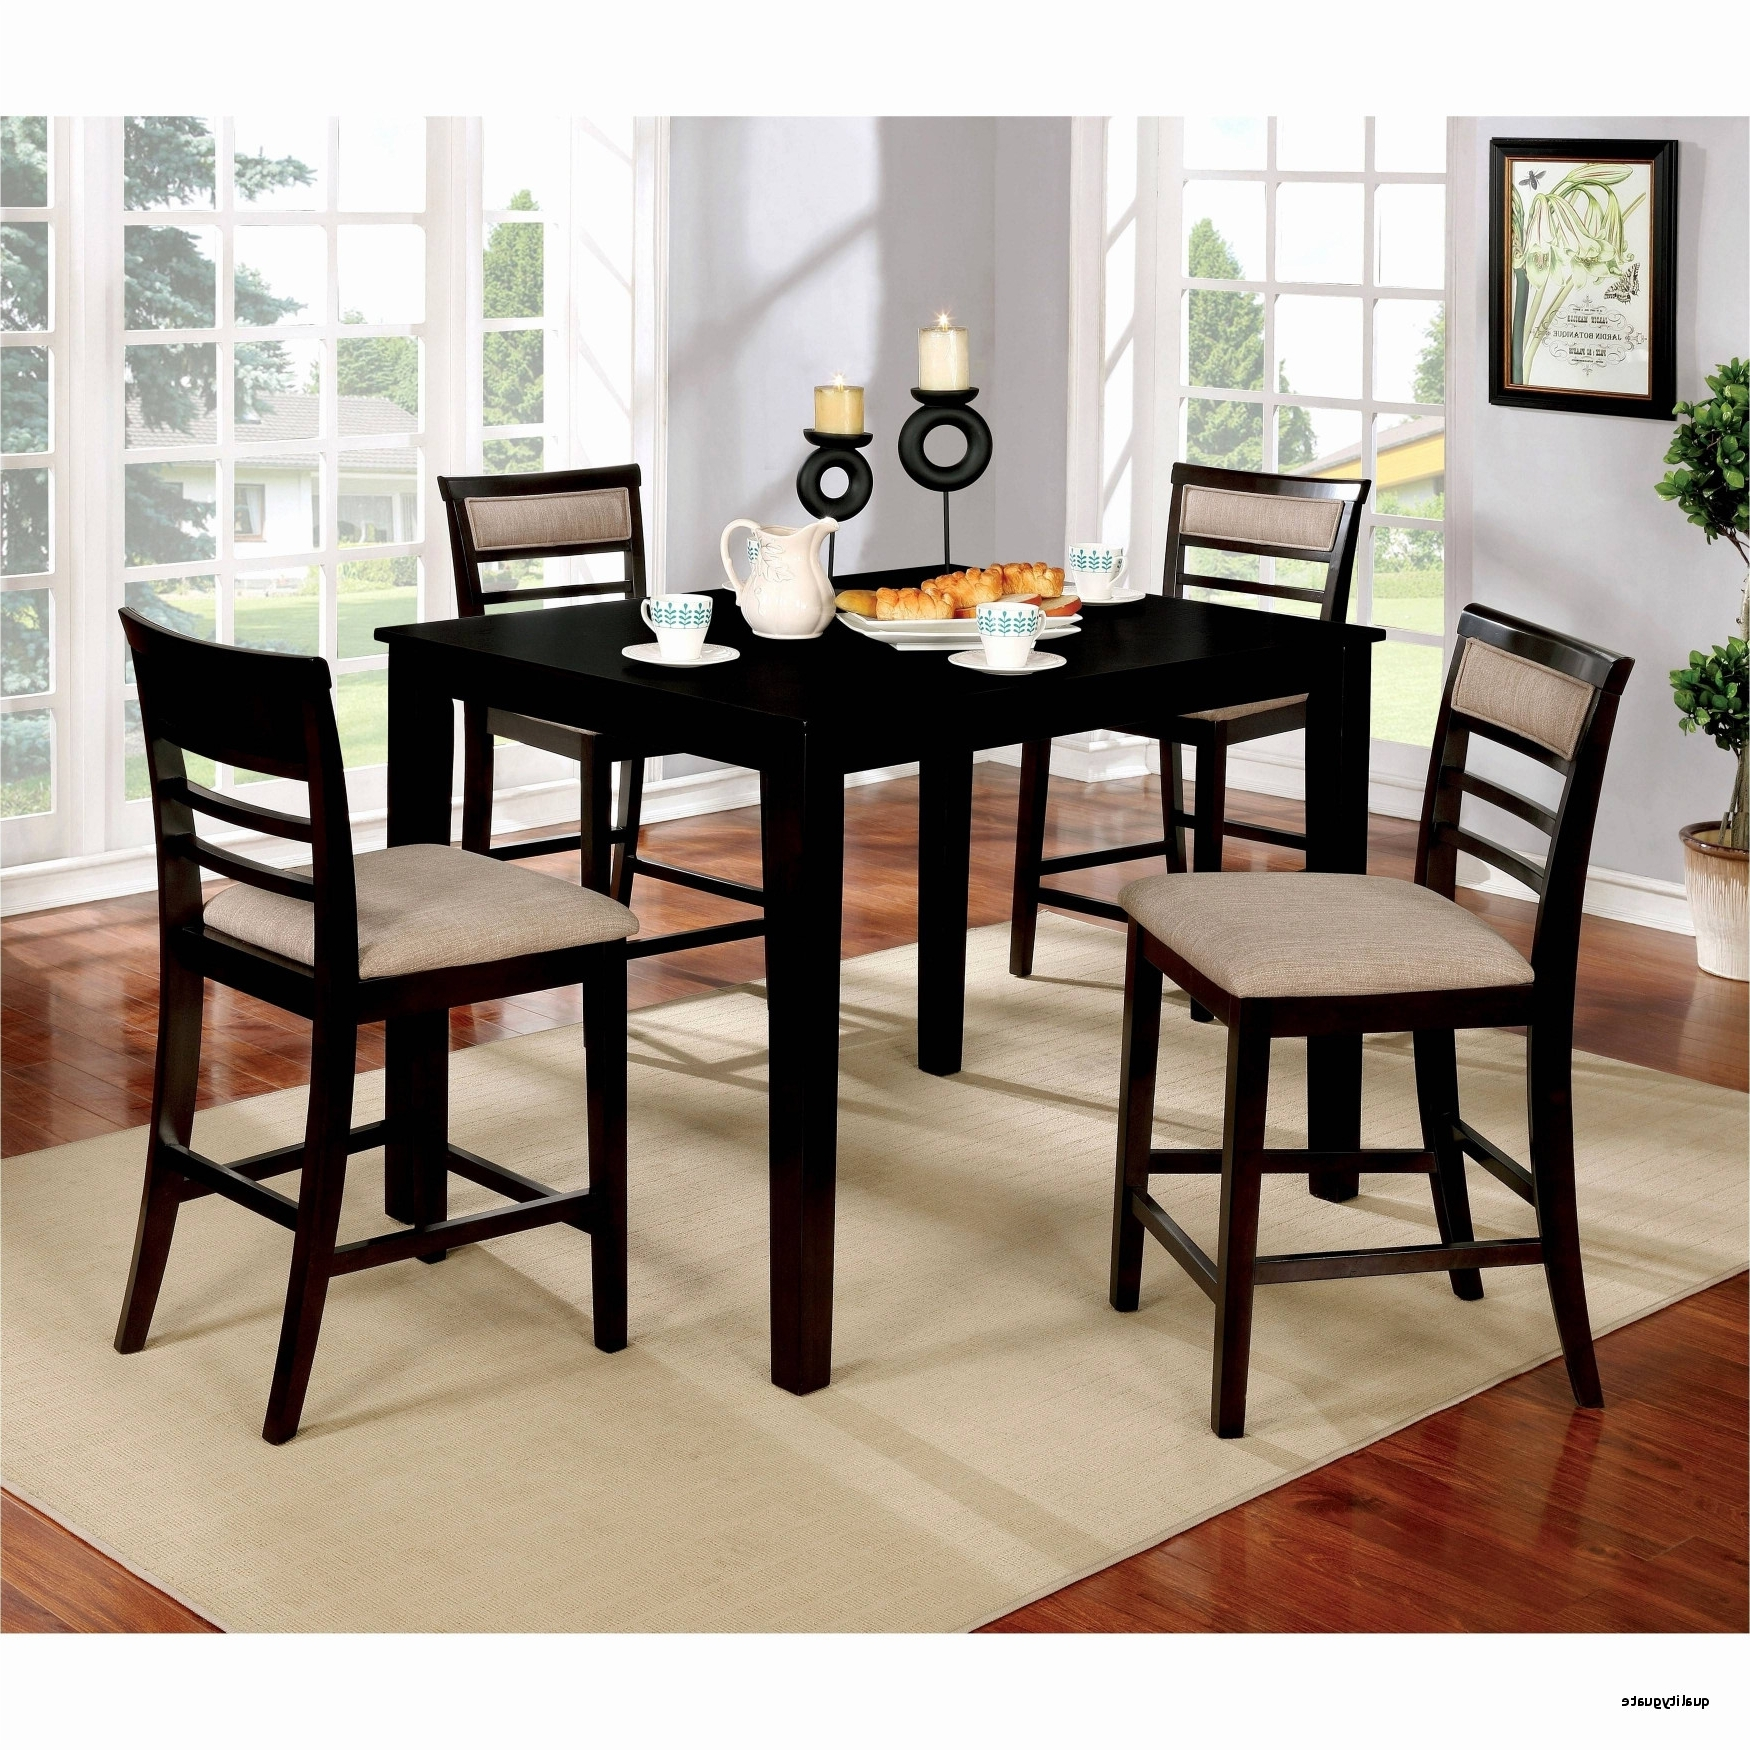 Two Person Dining Tables Pertaining To 2018 2 Person Dining Set – Home Design Ideas And Pictures (View 18 of 25)